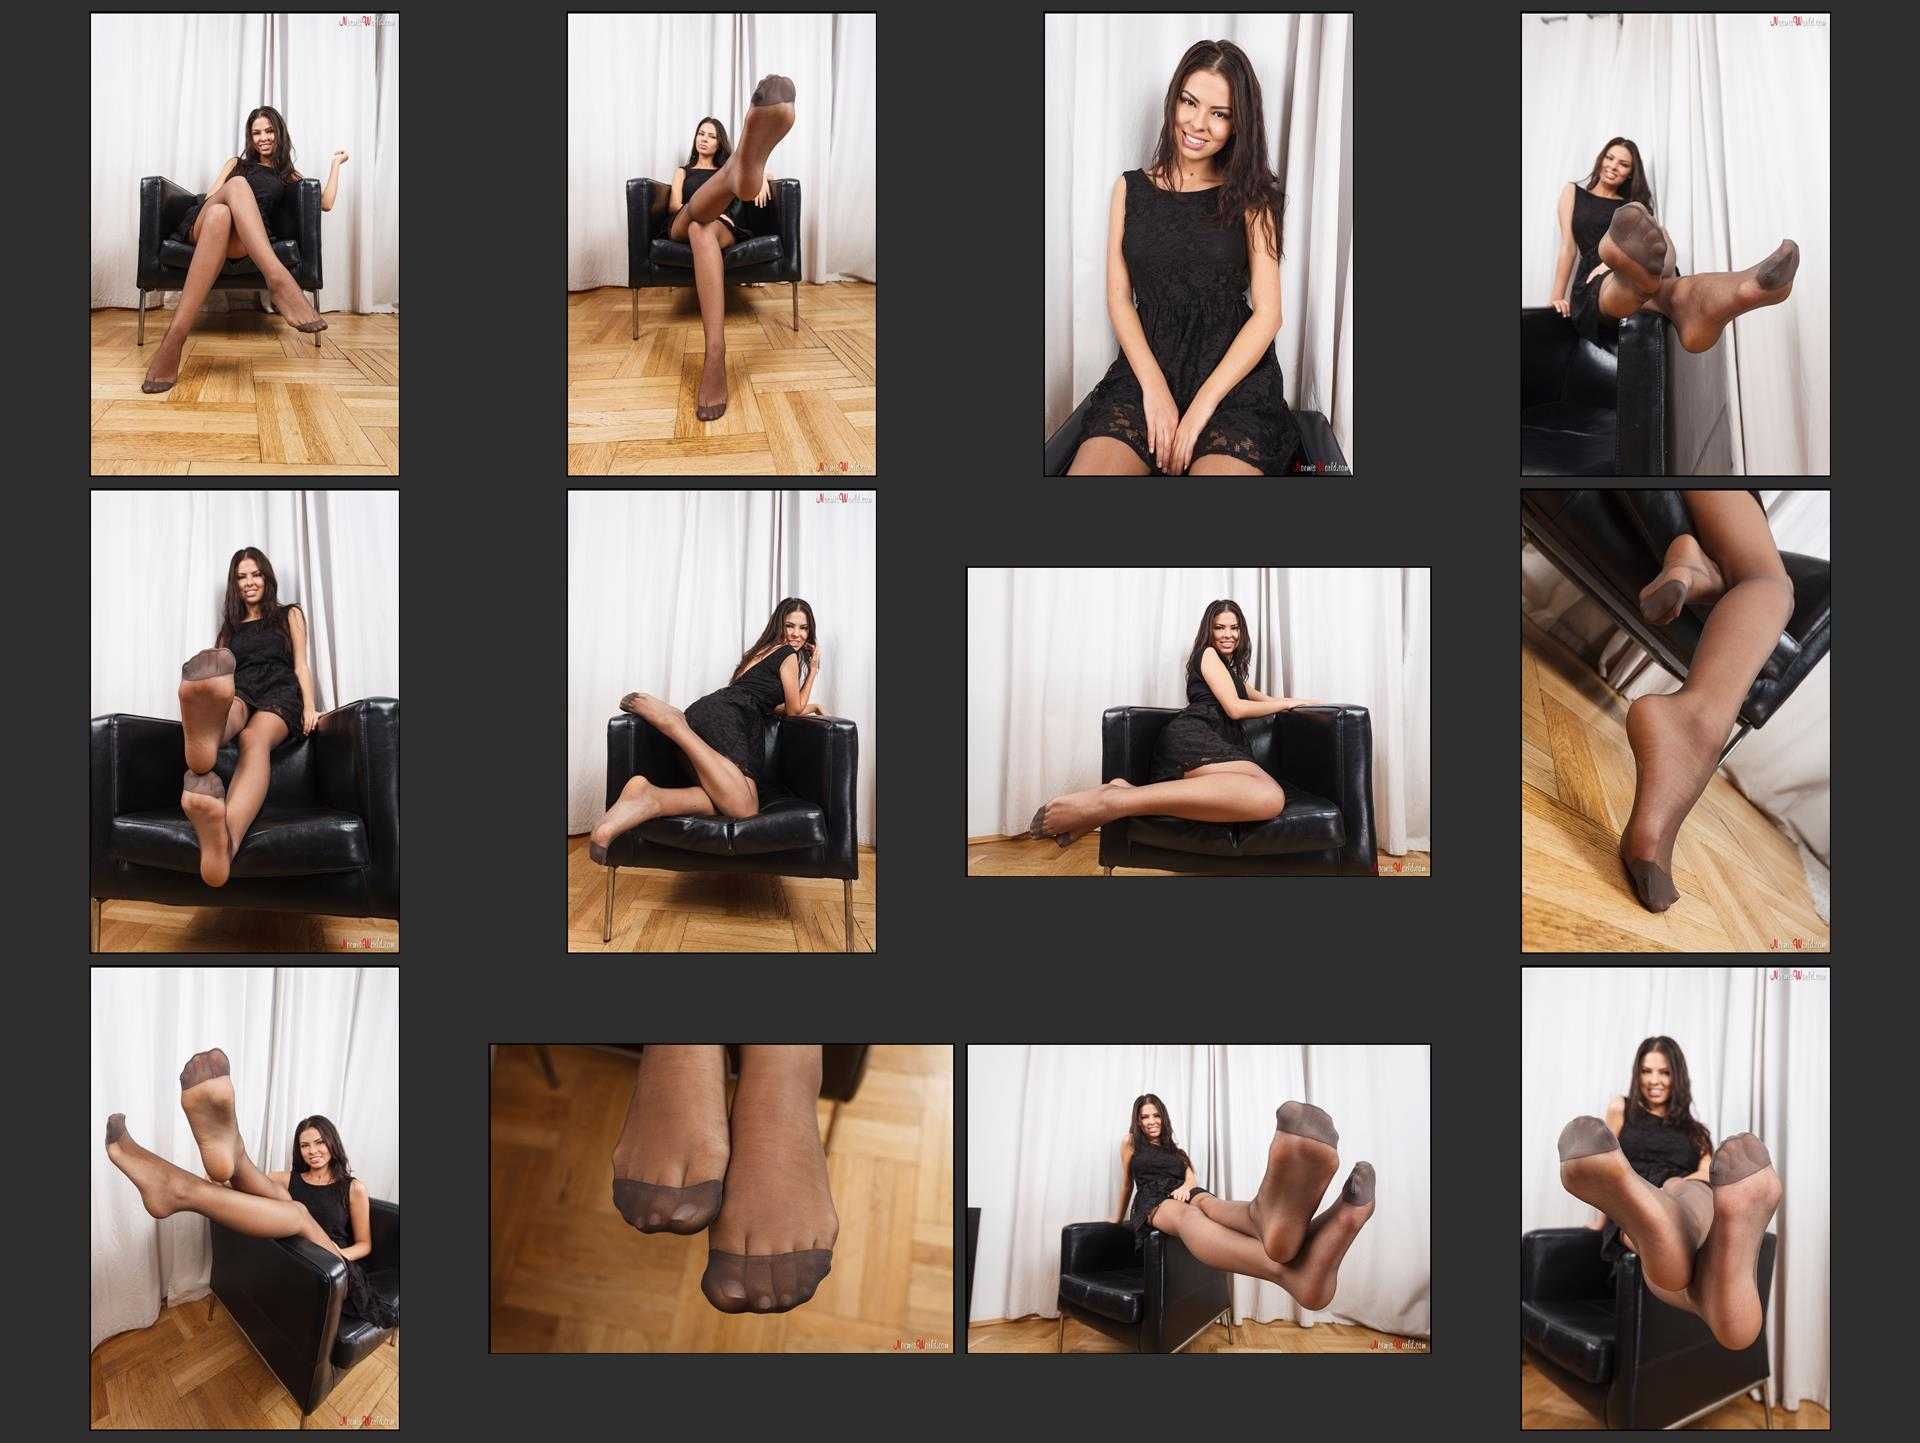 Noemi's World - Nerissa - You have to feel the silky touch of her feet in pantyhose - Femdom Pictures